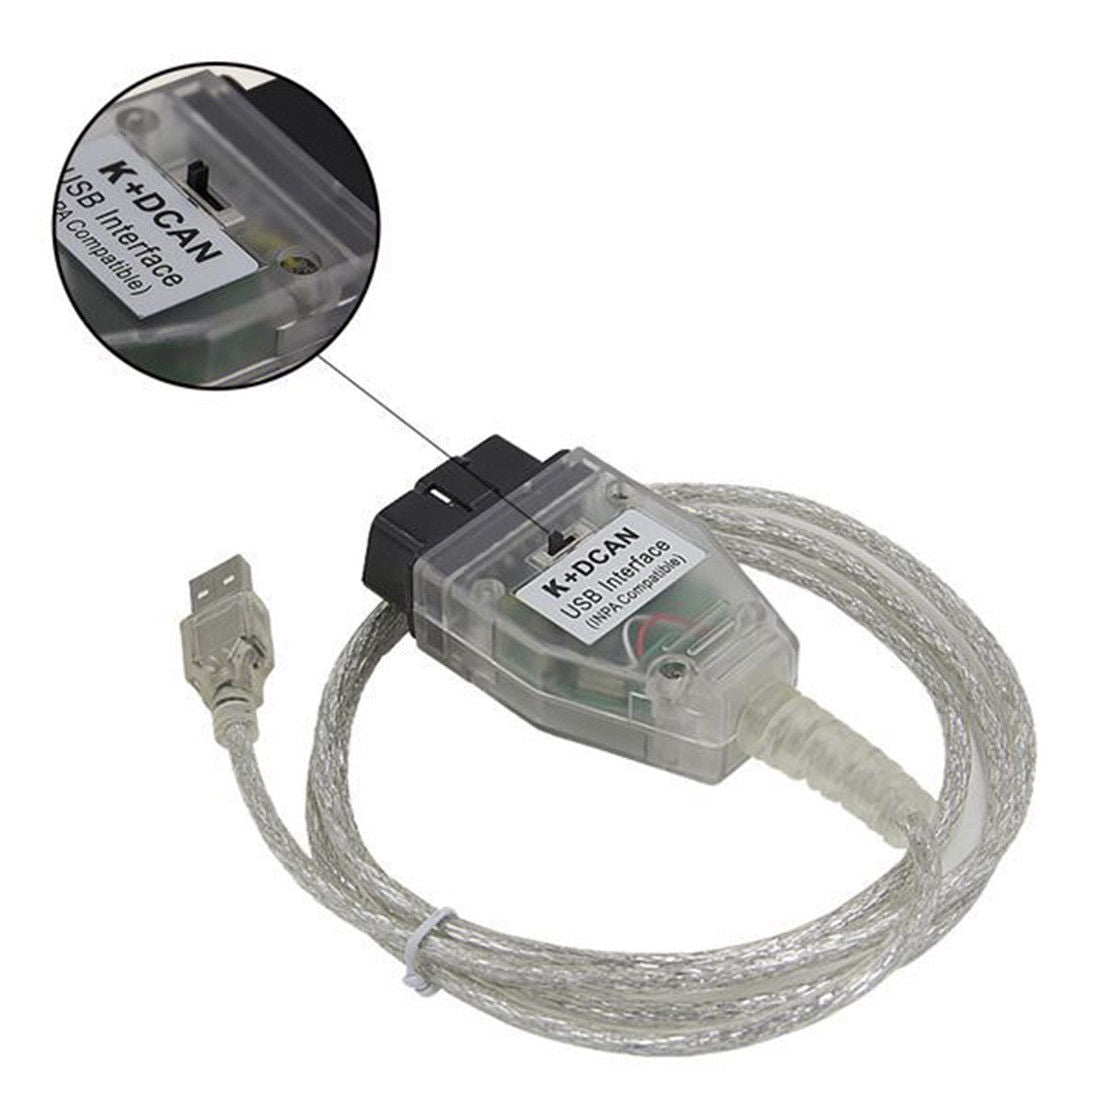 INPA K+CAN with Switch USB Interface Cable for BMW